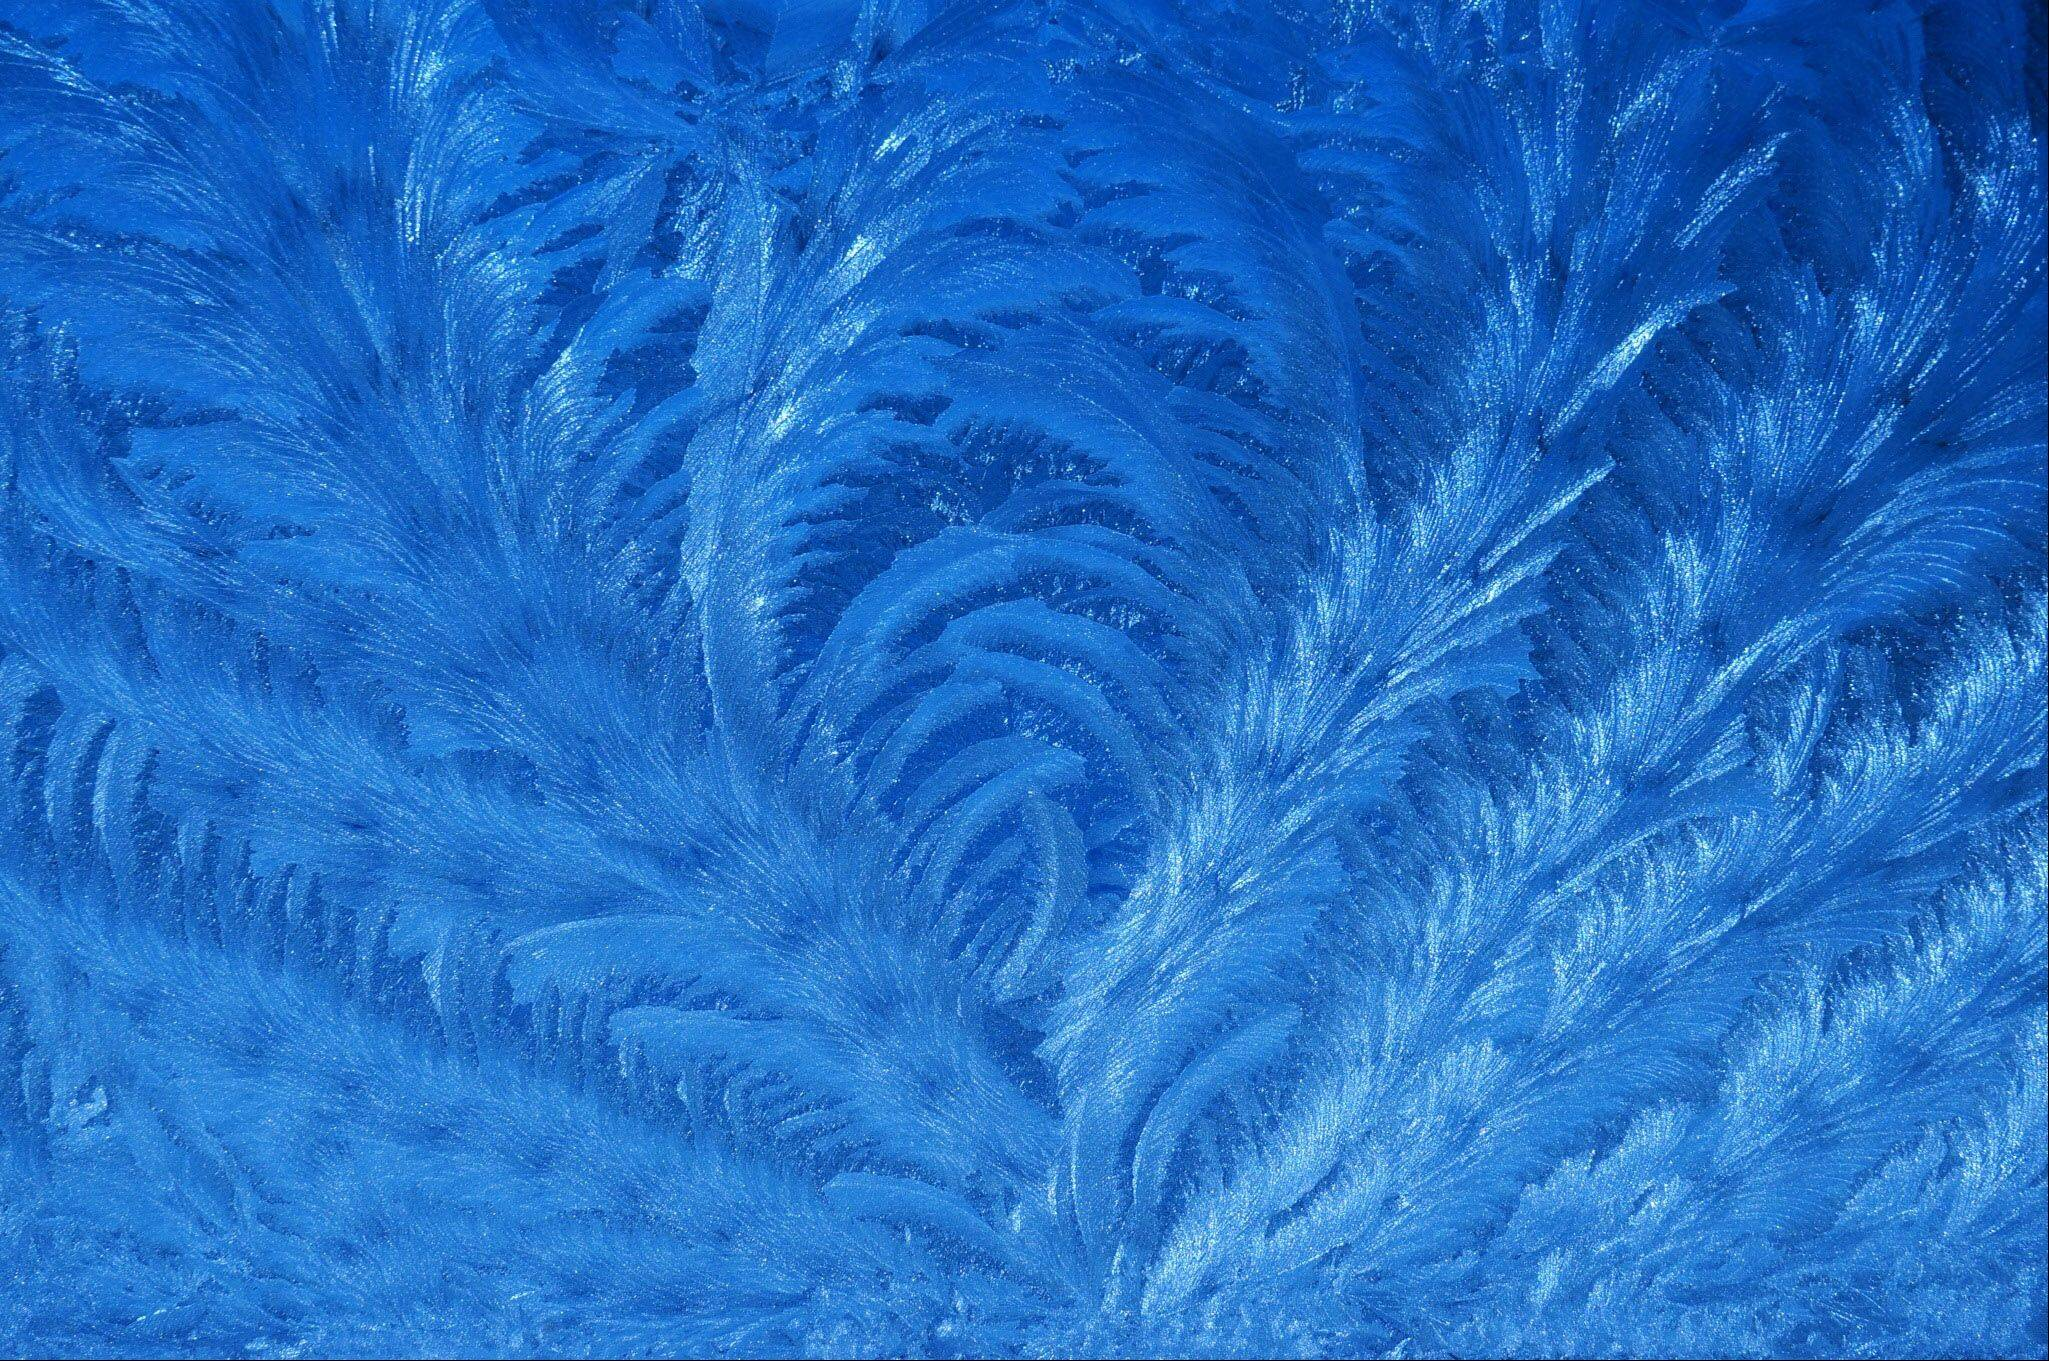 During our recent record-setting cold spell I spent some time photographing the frost patterns on our bedroom windows. This photo was one of my favorites, reminding me of peacock feathers or etchings on fine crystal.